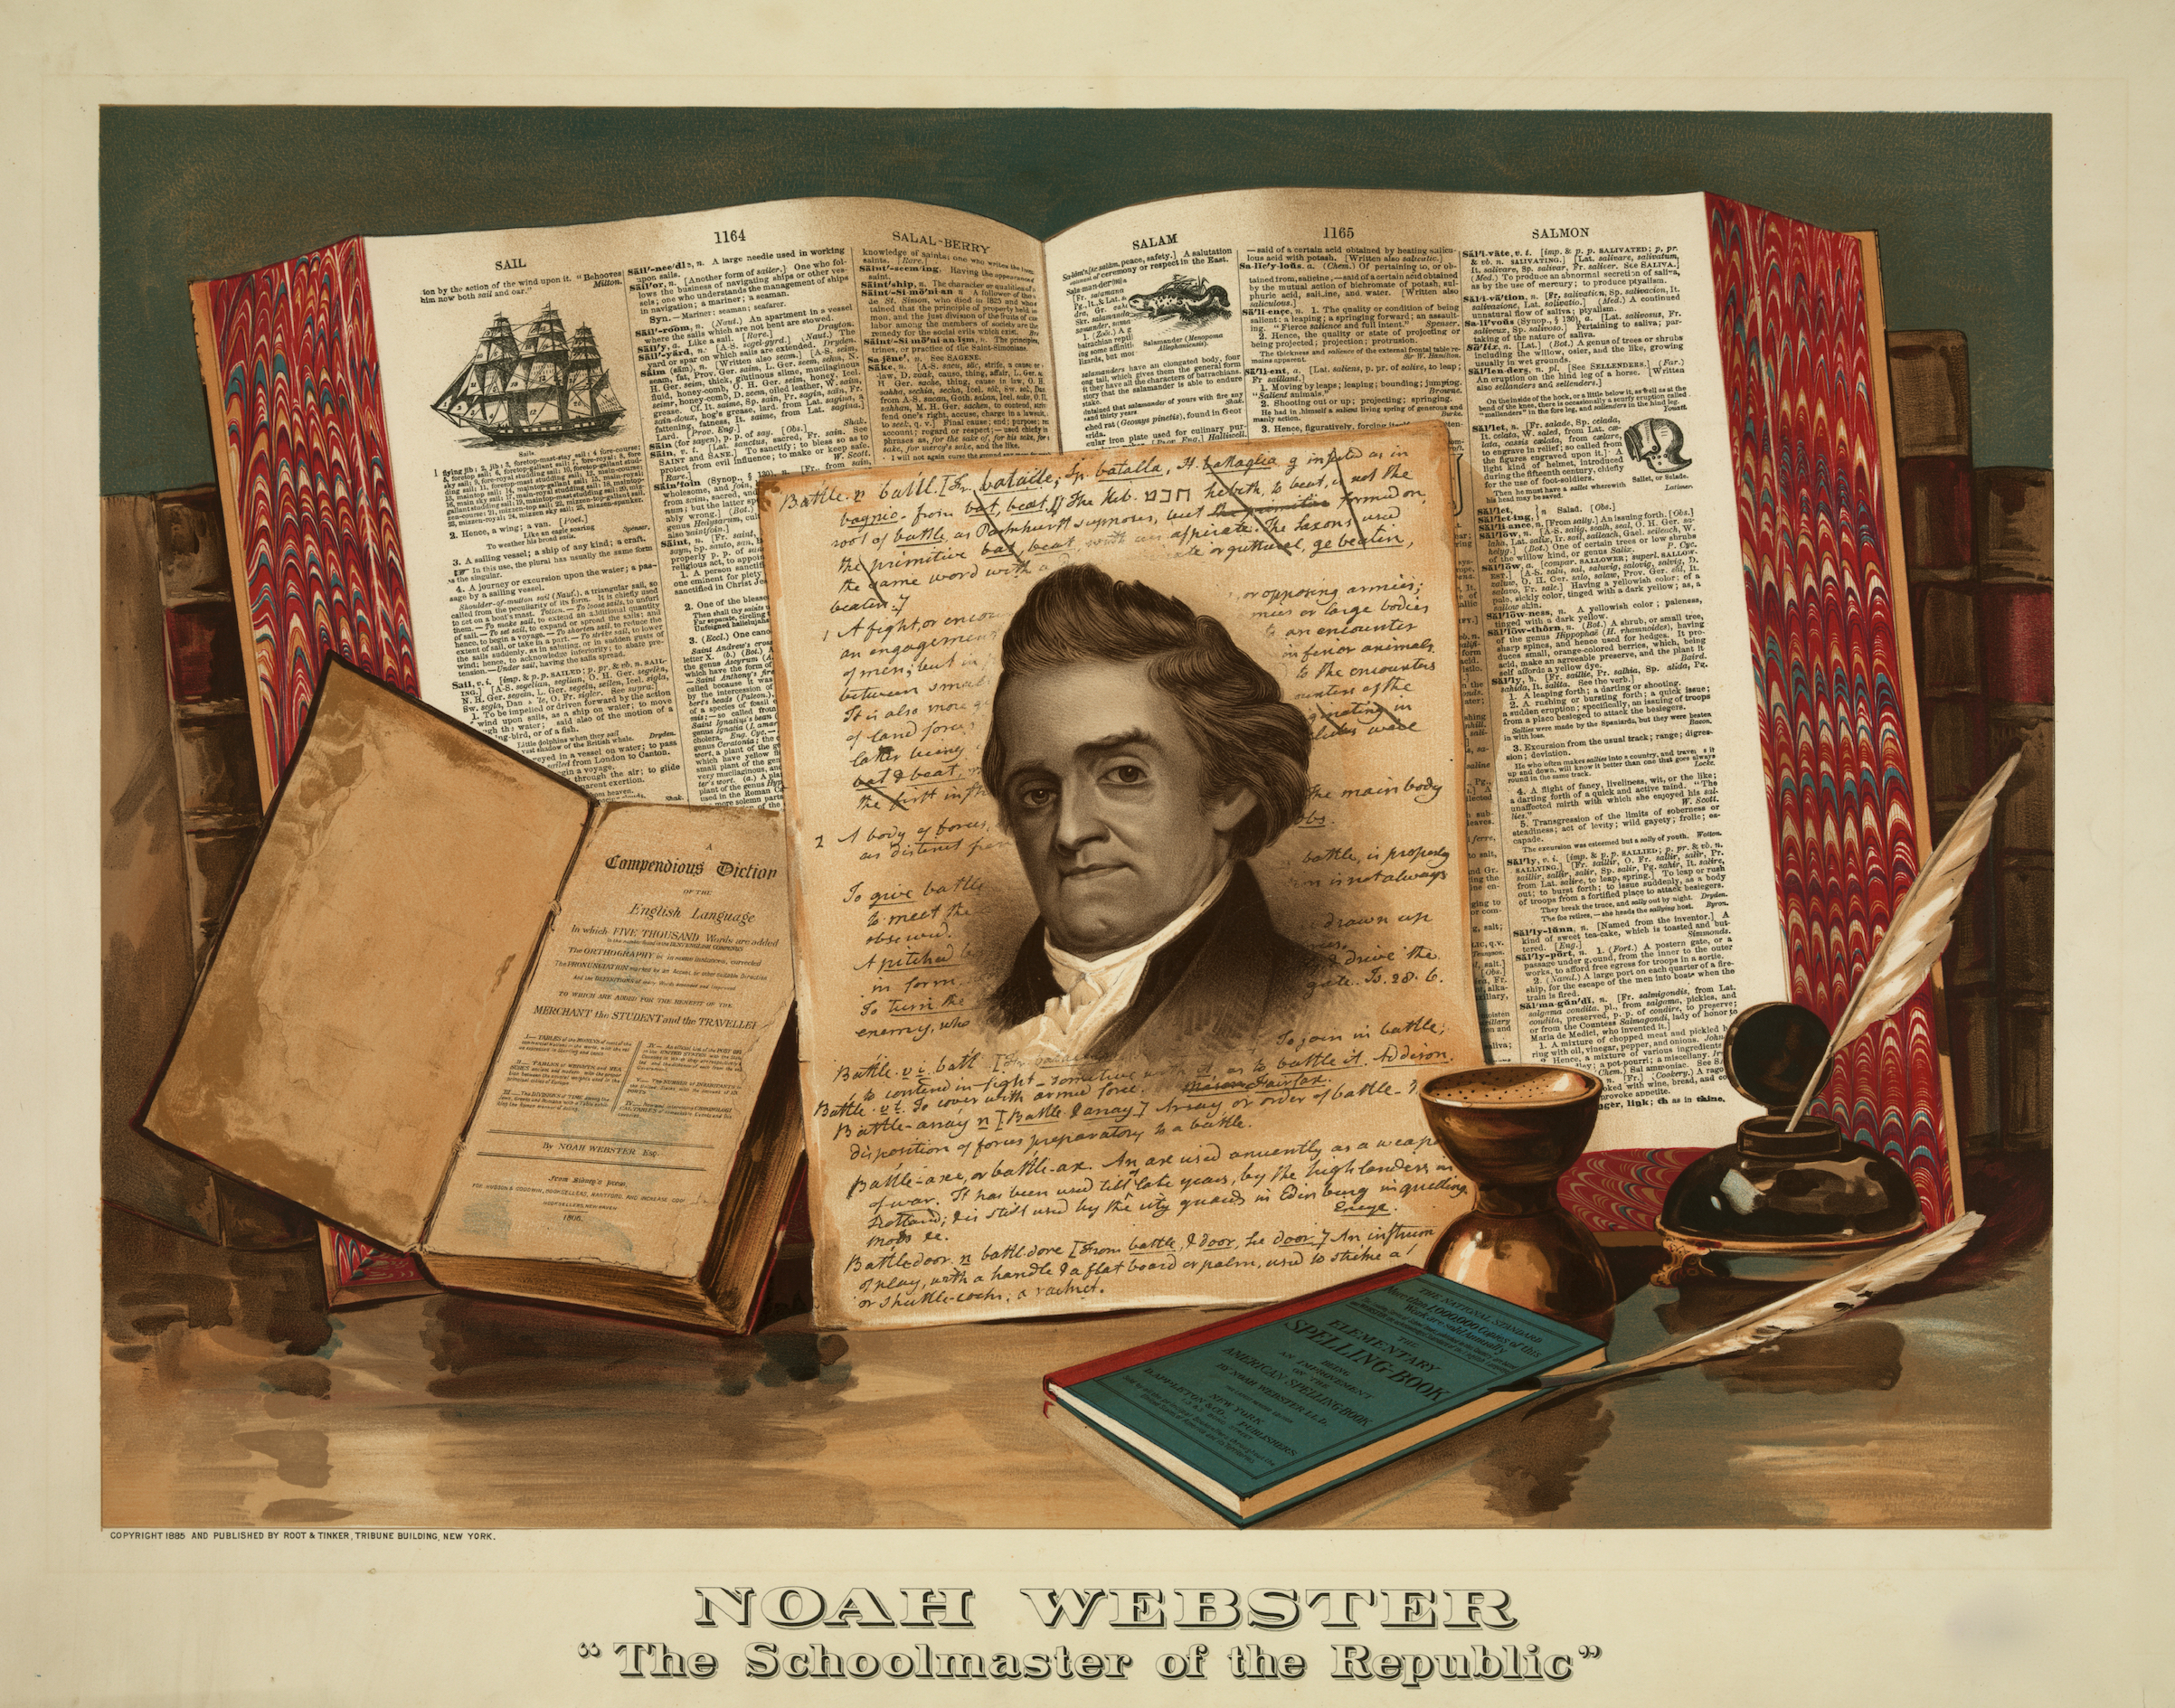 Noah Webster portrait, circa 1891.